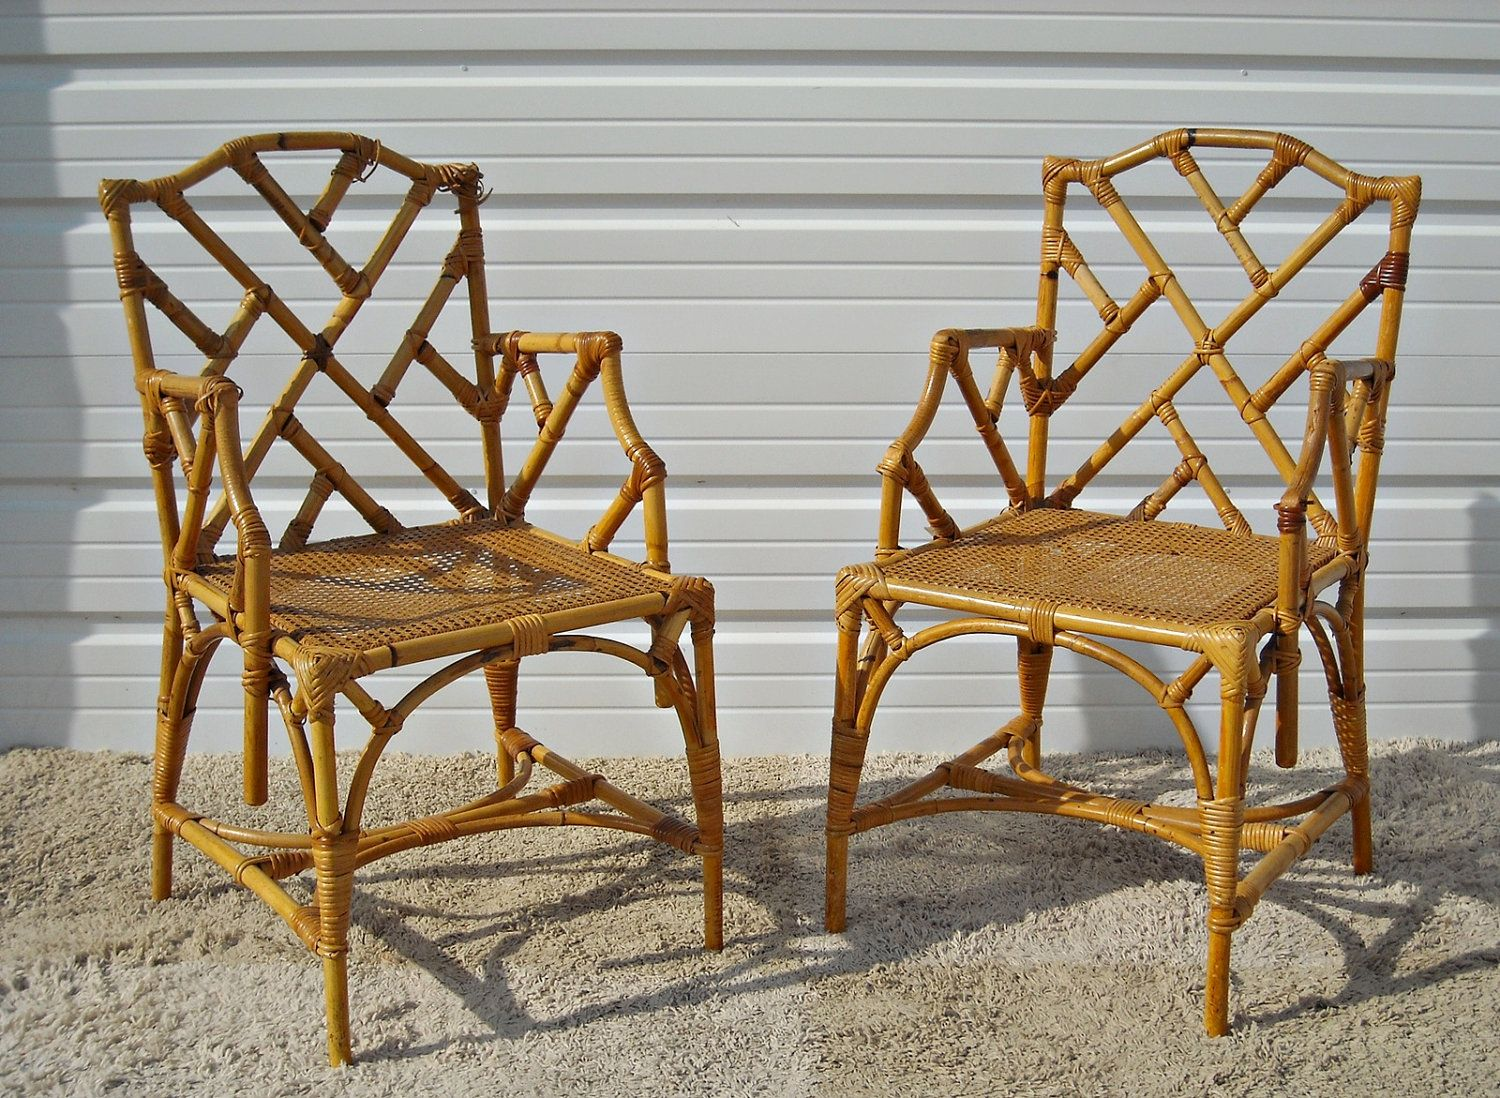 Vintage Chippendale Bamboo Rattan Chairs Bamboo Chair Rattan